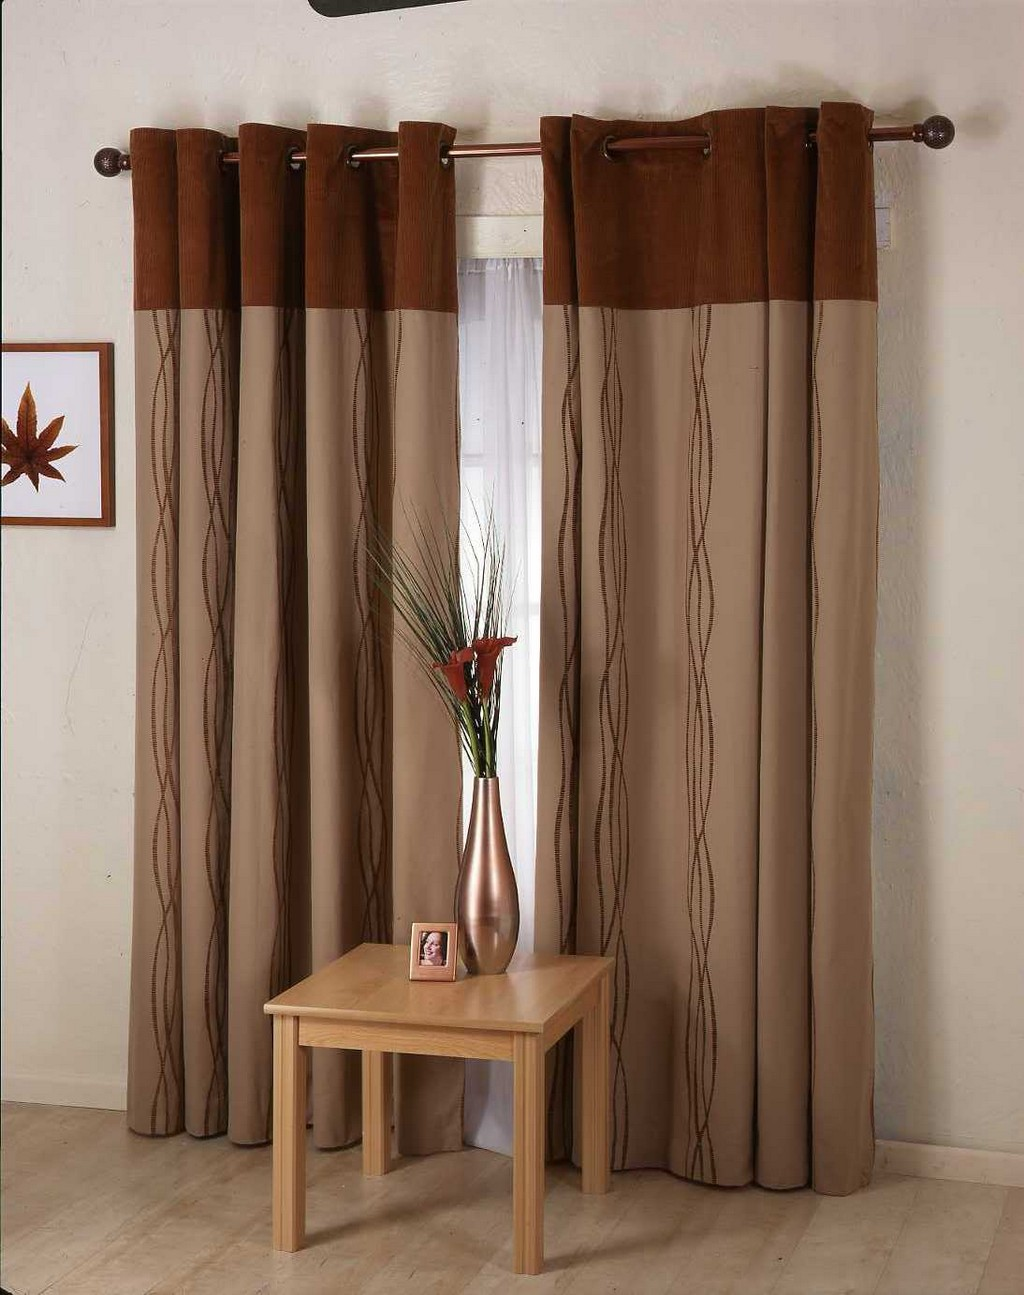 chili curtains, curtain styles, country shower curtains, curtain rod